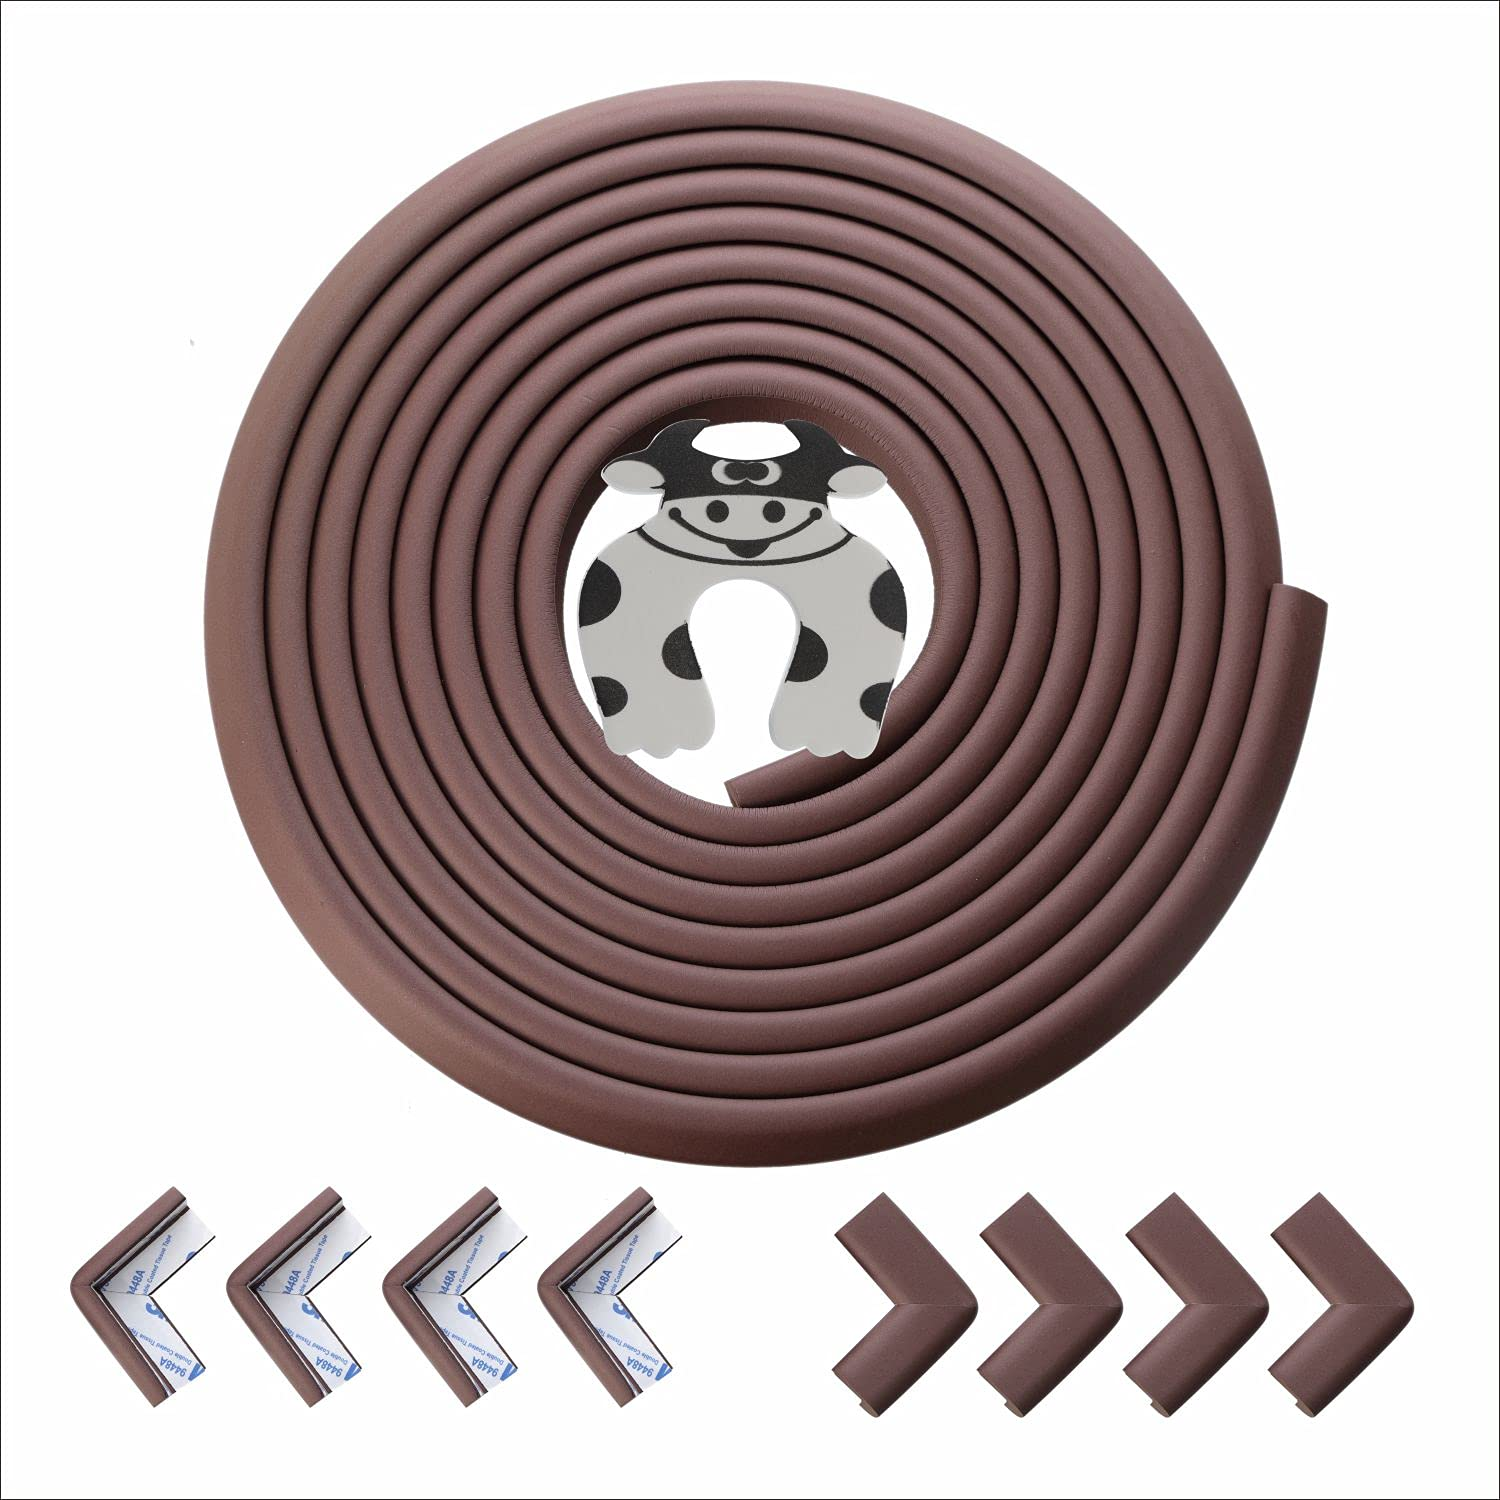 Baby Proofing Edge Corner Guard - Furniture Edge Corner Protector with 3M Adhesive Tape Safety Bumper for Kids Foam Cushion Bumpers Protector for Table Desk 20.4ft(18ft Edge + 8 Corners ) Coffee Brown